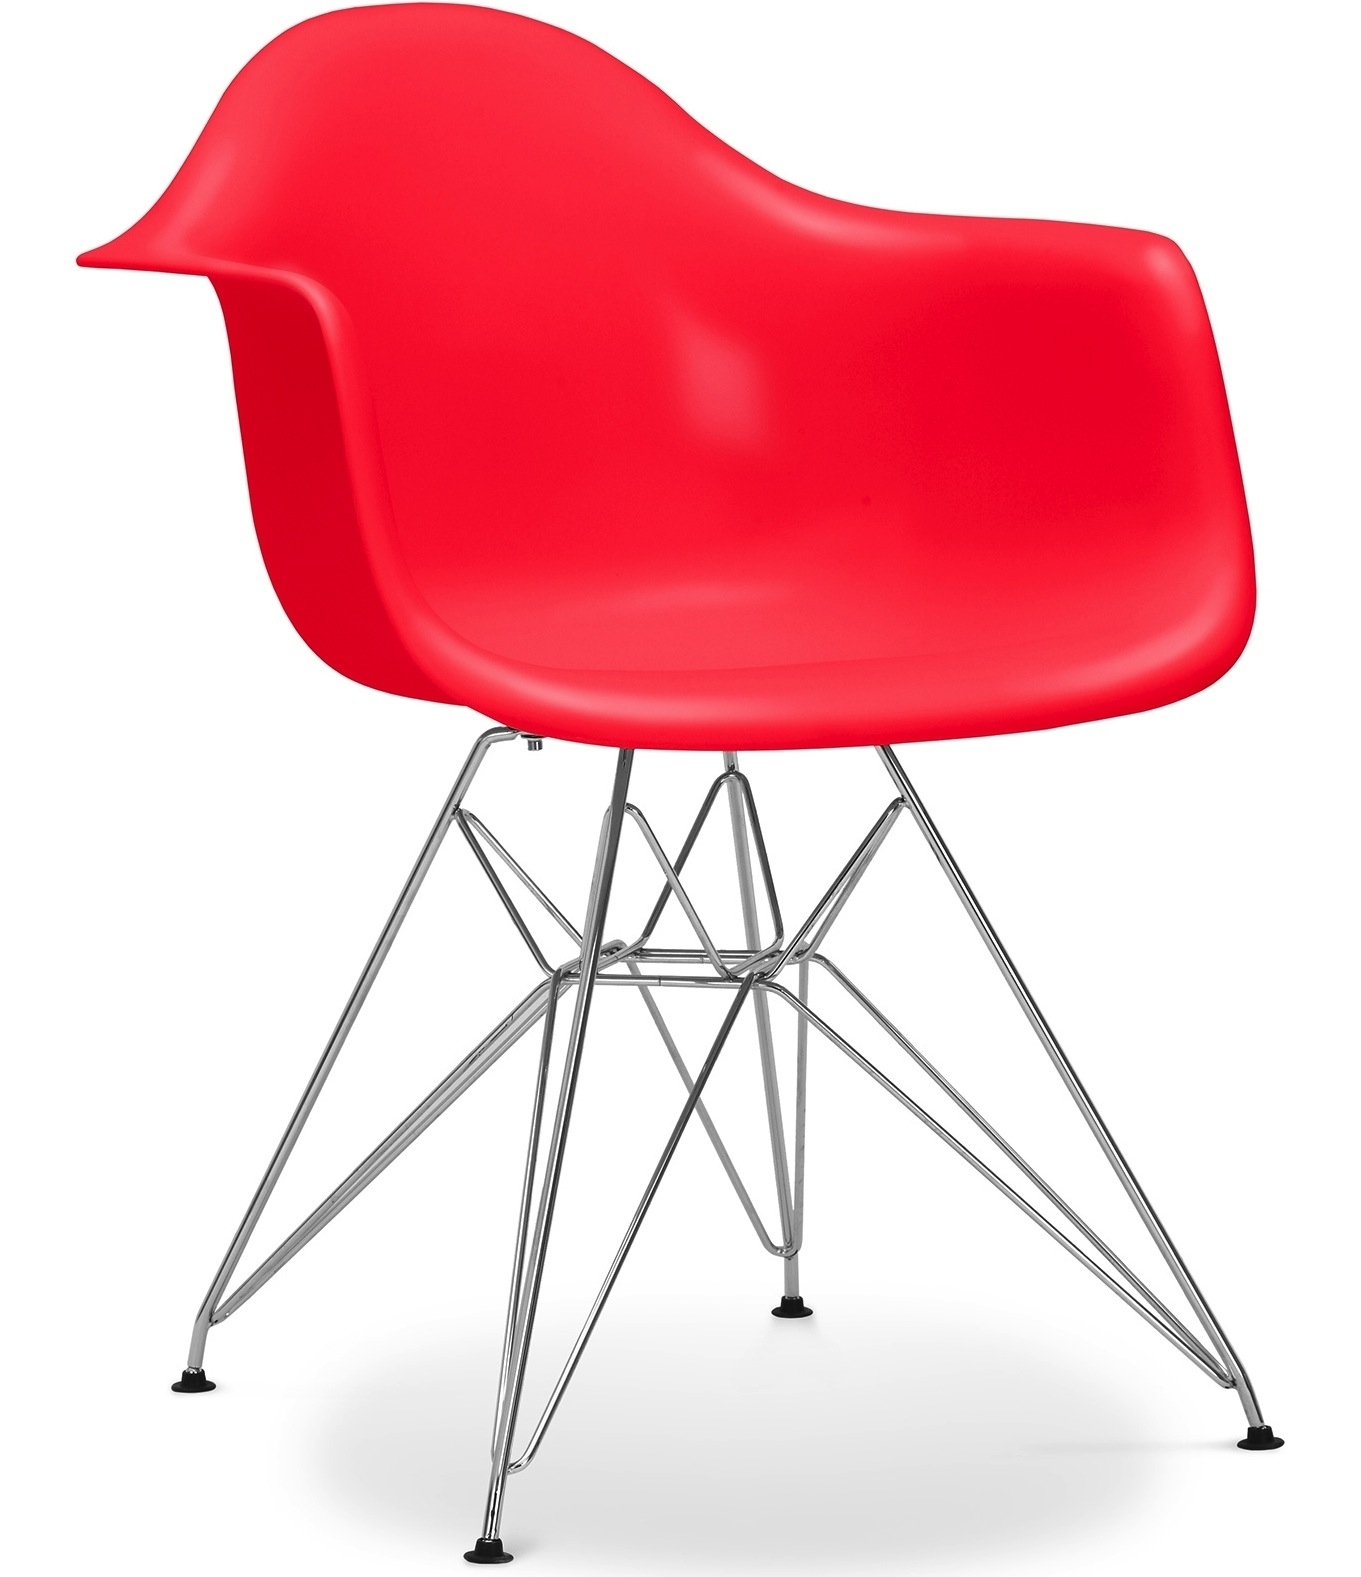 Fauteuil polypropyl ne rouge inspir e eiffel charles eames for Achat fauteuil charles eames